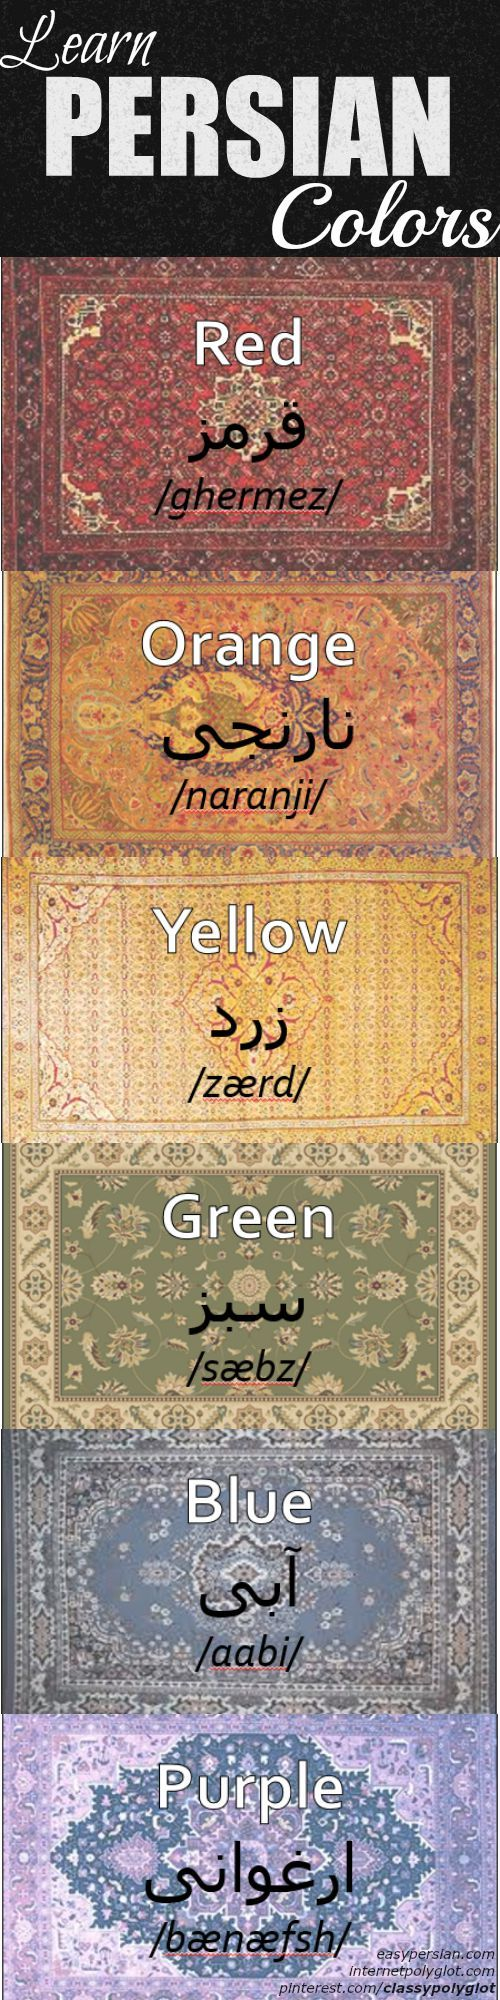 Best ways to learn Farsi? : iran - reddit